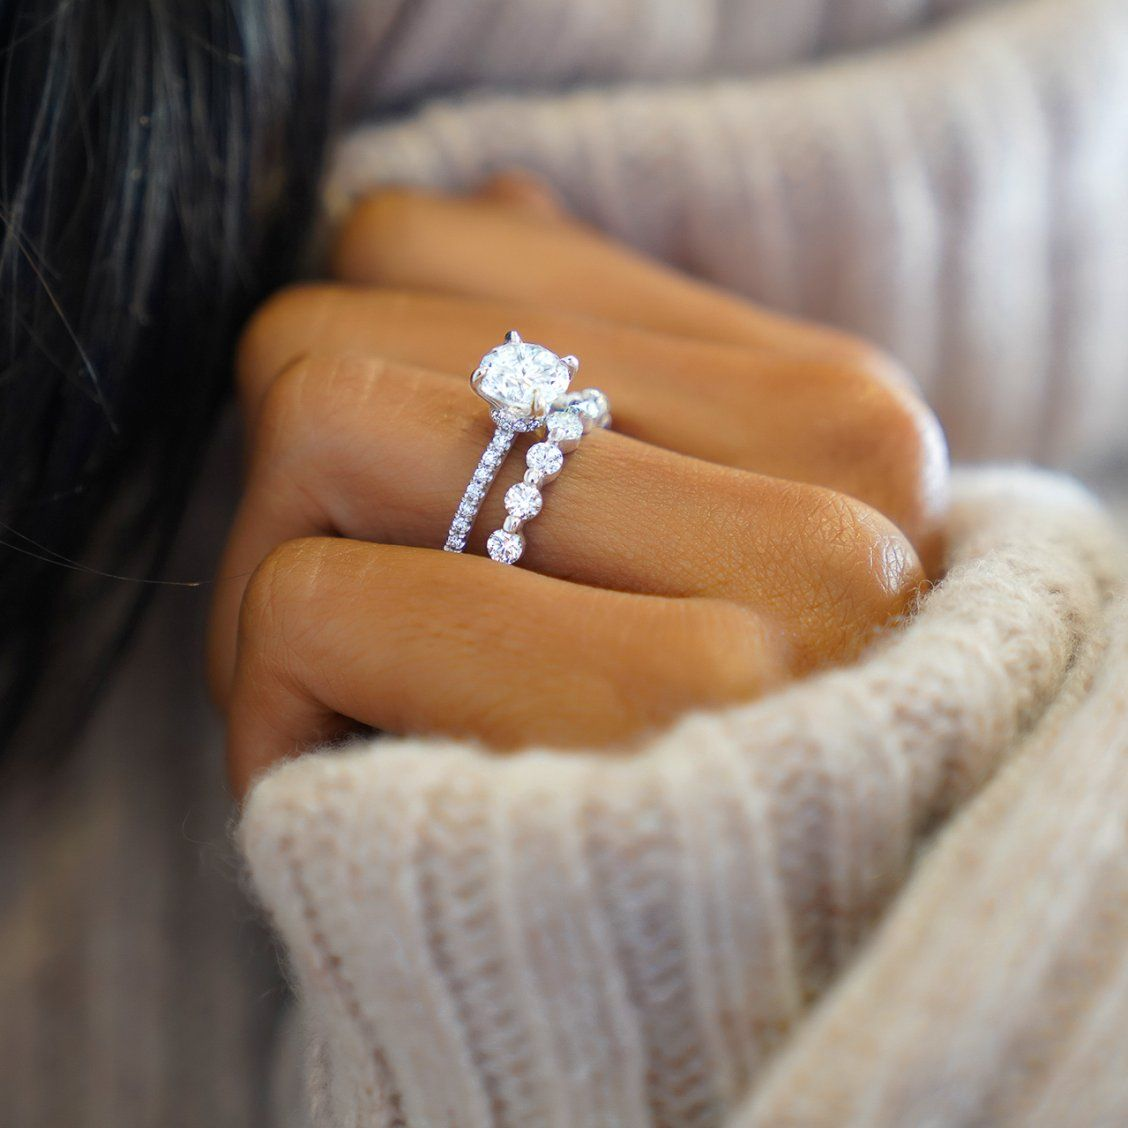 2020 Engagement Ring Trends Brilliant Earth Trending Engagement Rings Top Engagement Rings Popular Engagement Rings